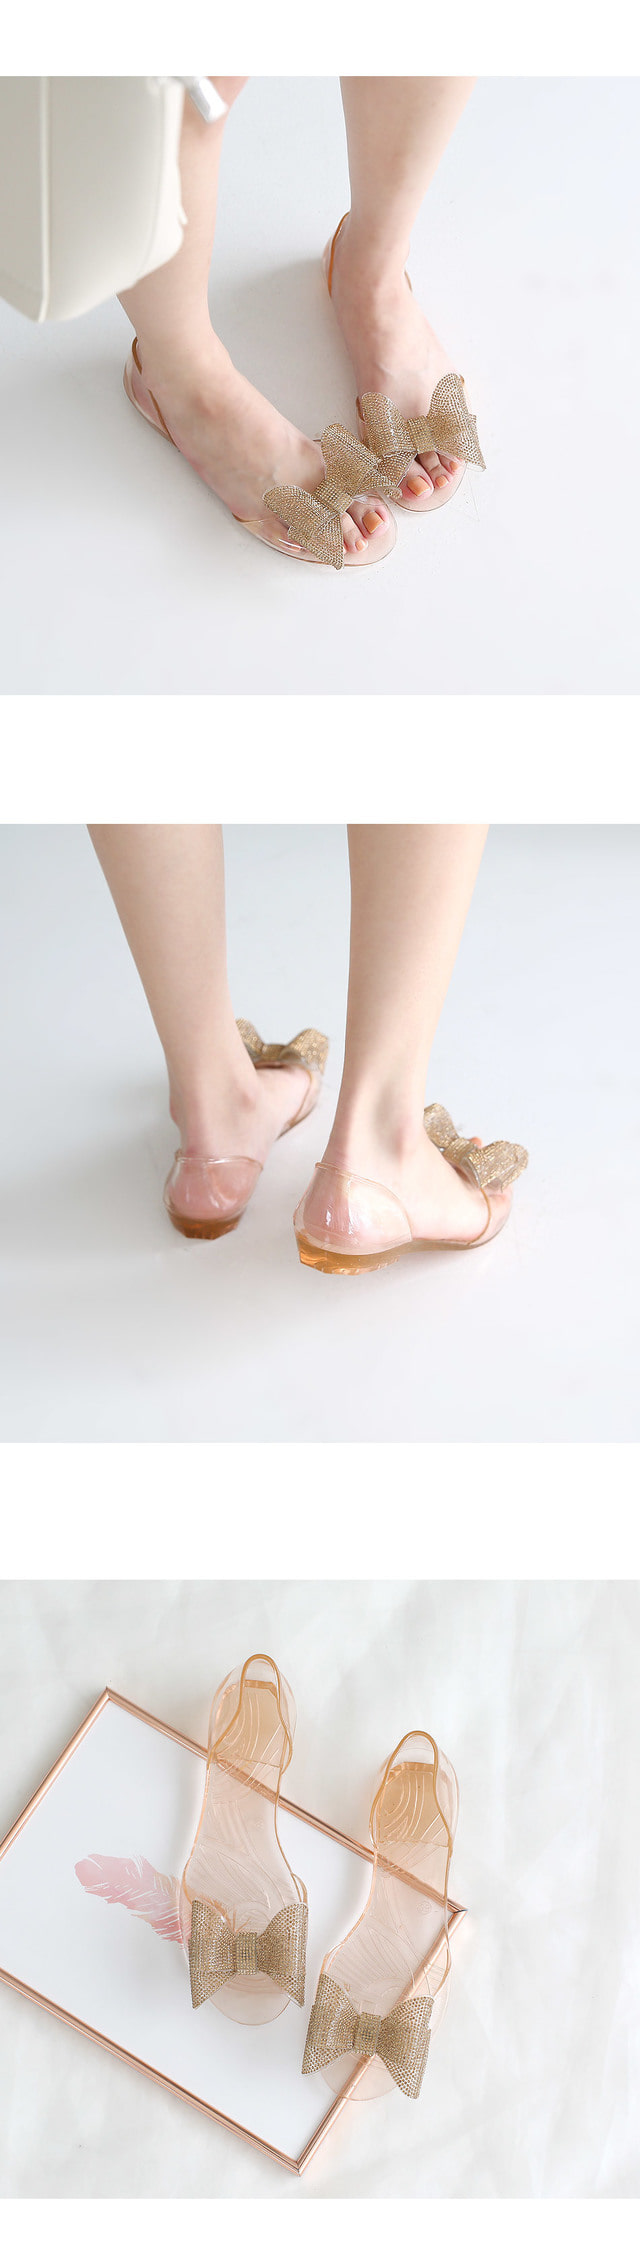 Curlins Jelly Flat Shoes 1.5cm